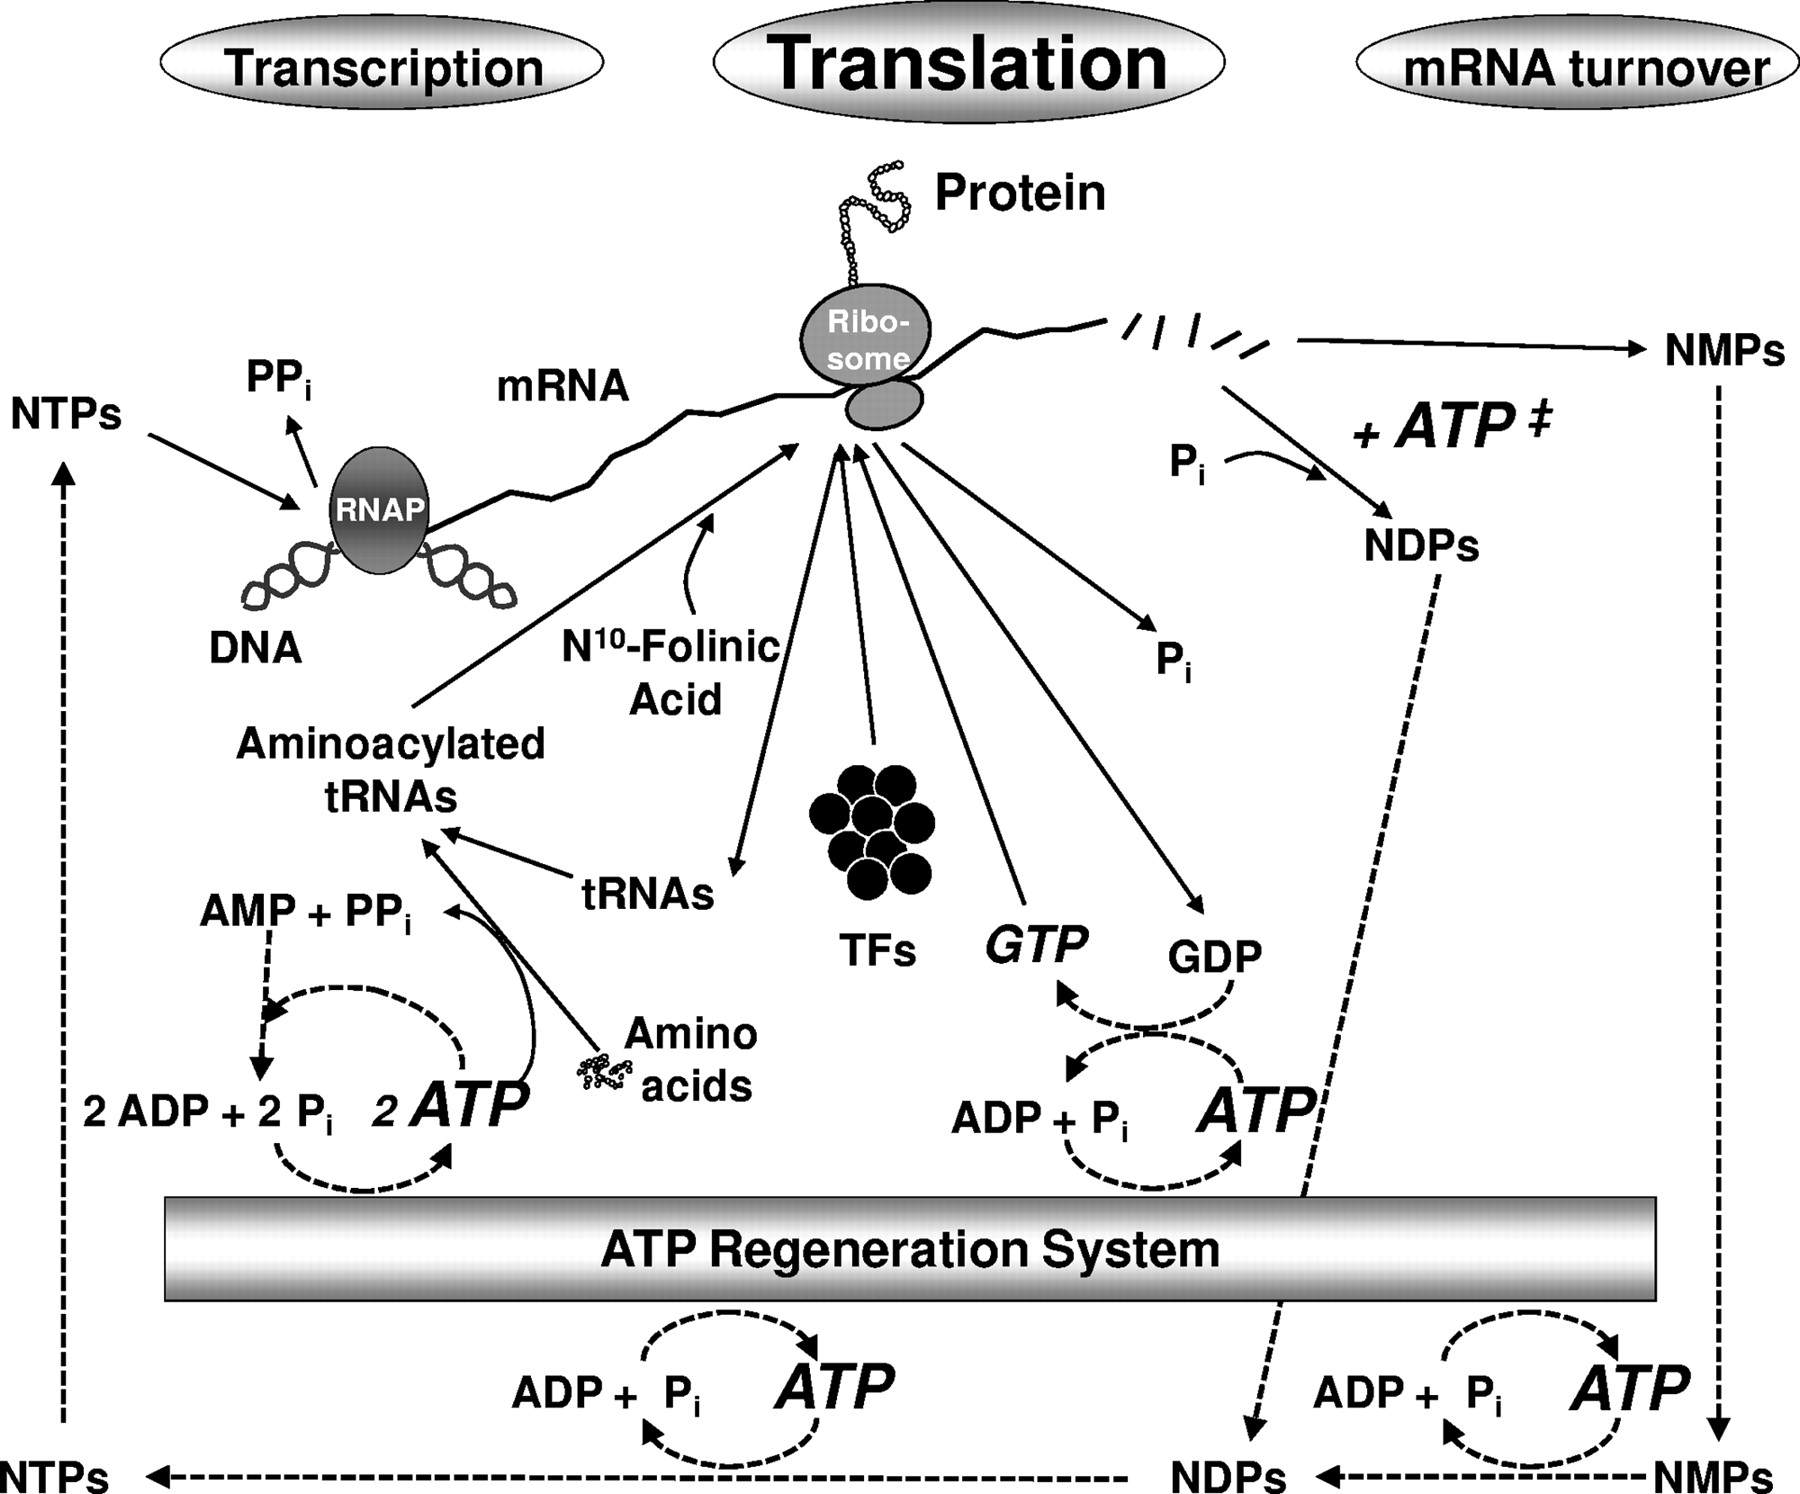 Protein Synthesis Diagram Continued Protein Synthesis At Low Atp And Gtp Enables Cell